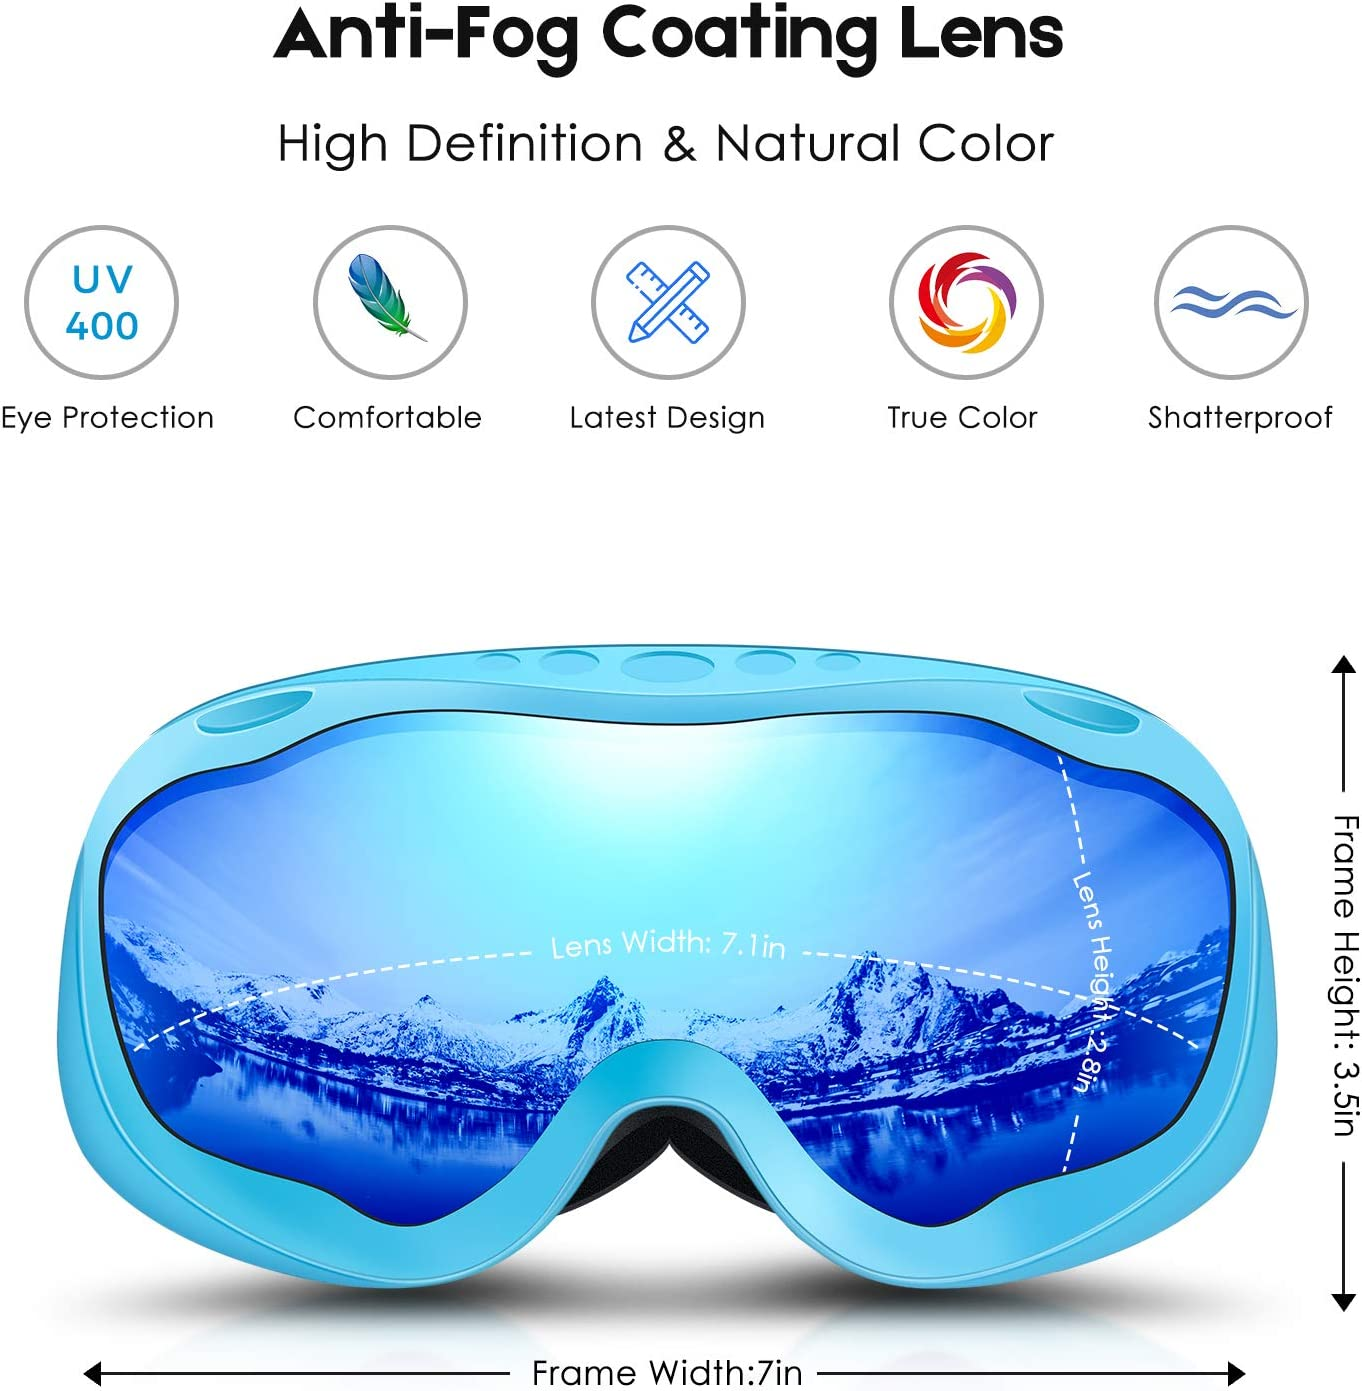 Deecreek Ski Goggles, Mens Women Snowbord Goggles Over Glasses OTG Anti-Fog Skiing Goggles for Adults Youth Snow, Helmet Compatible